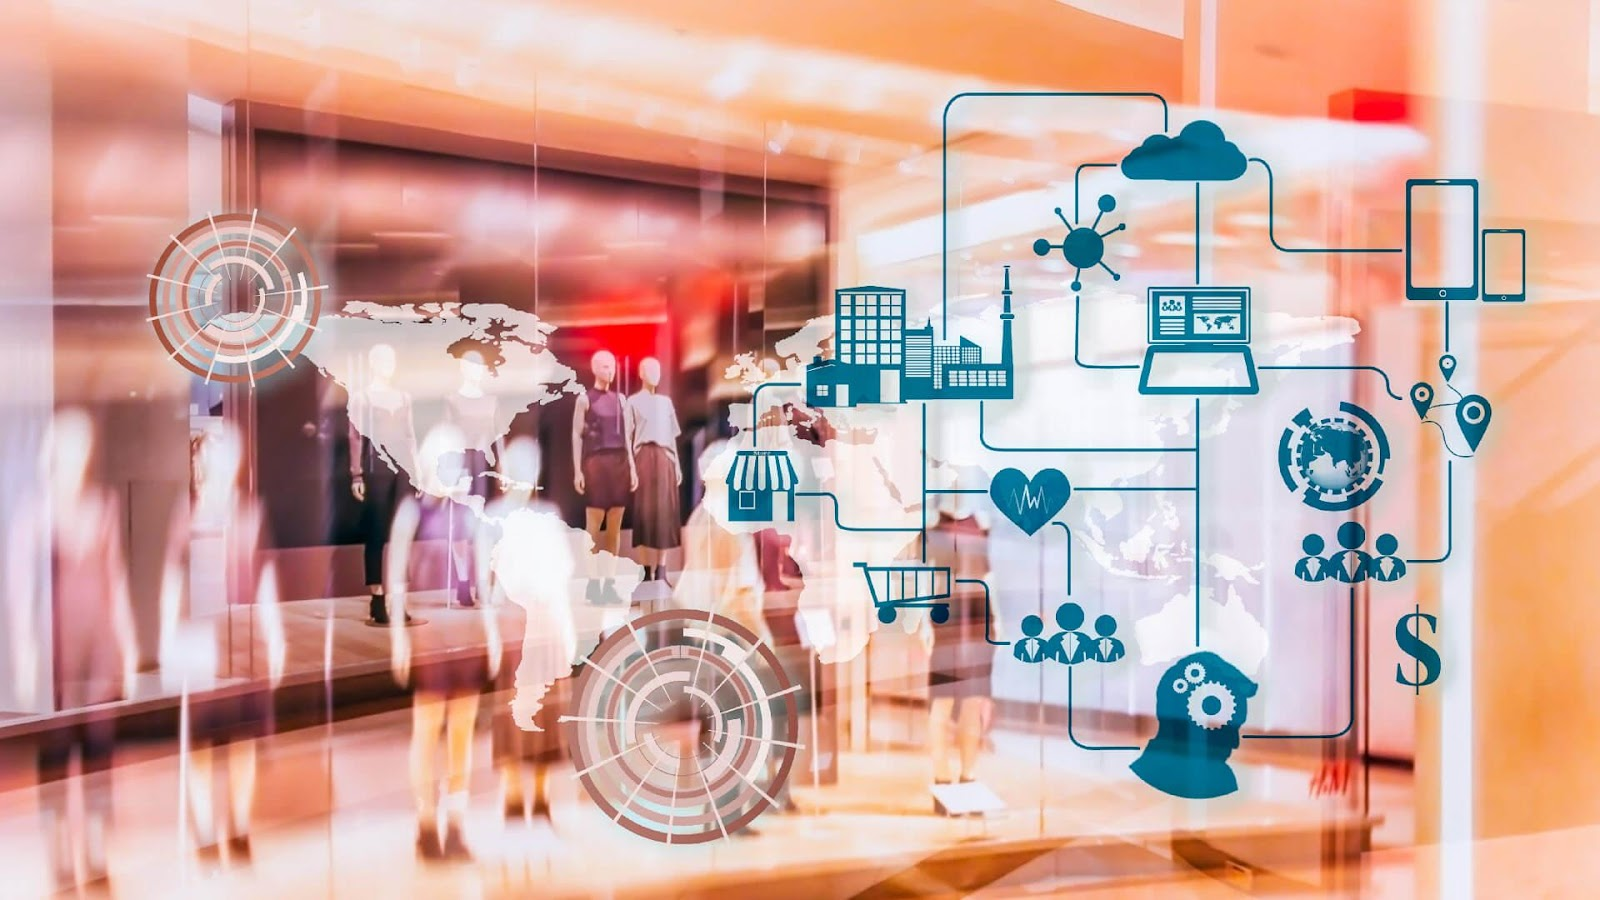 Automate omnichannel marketing strategies to improve the customer journey